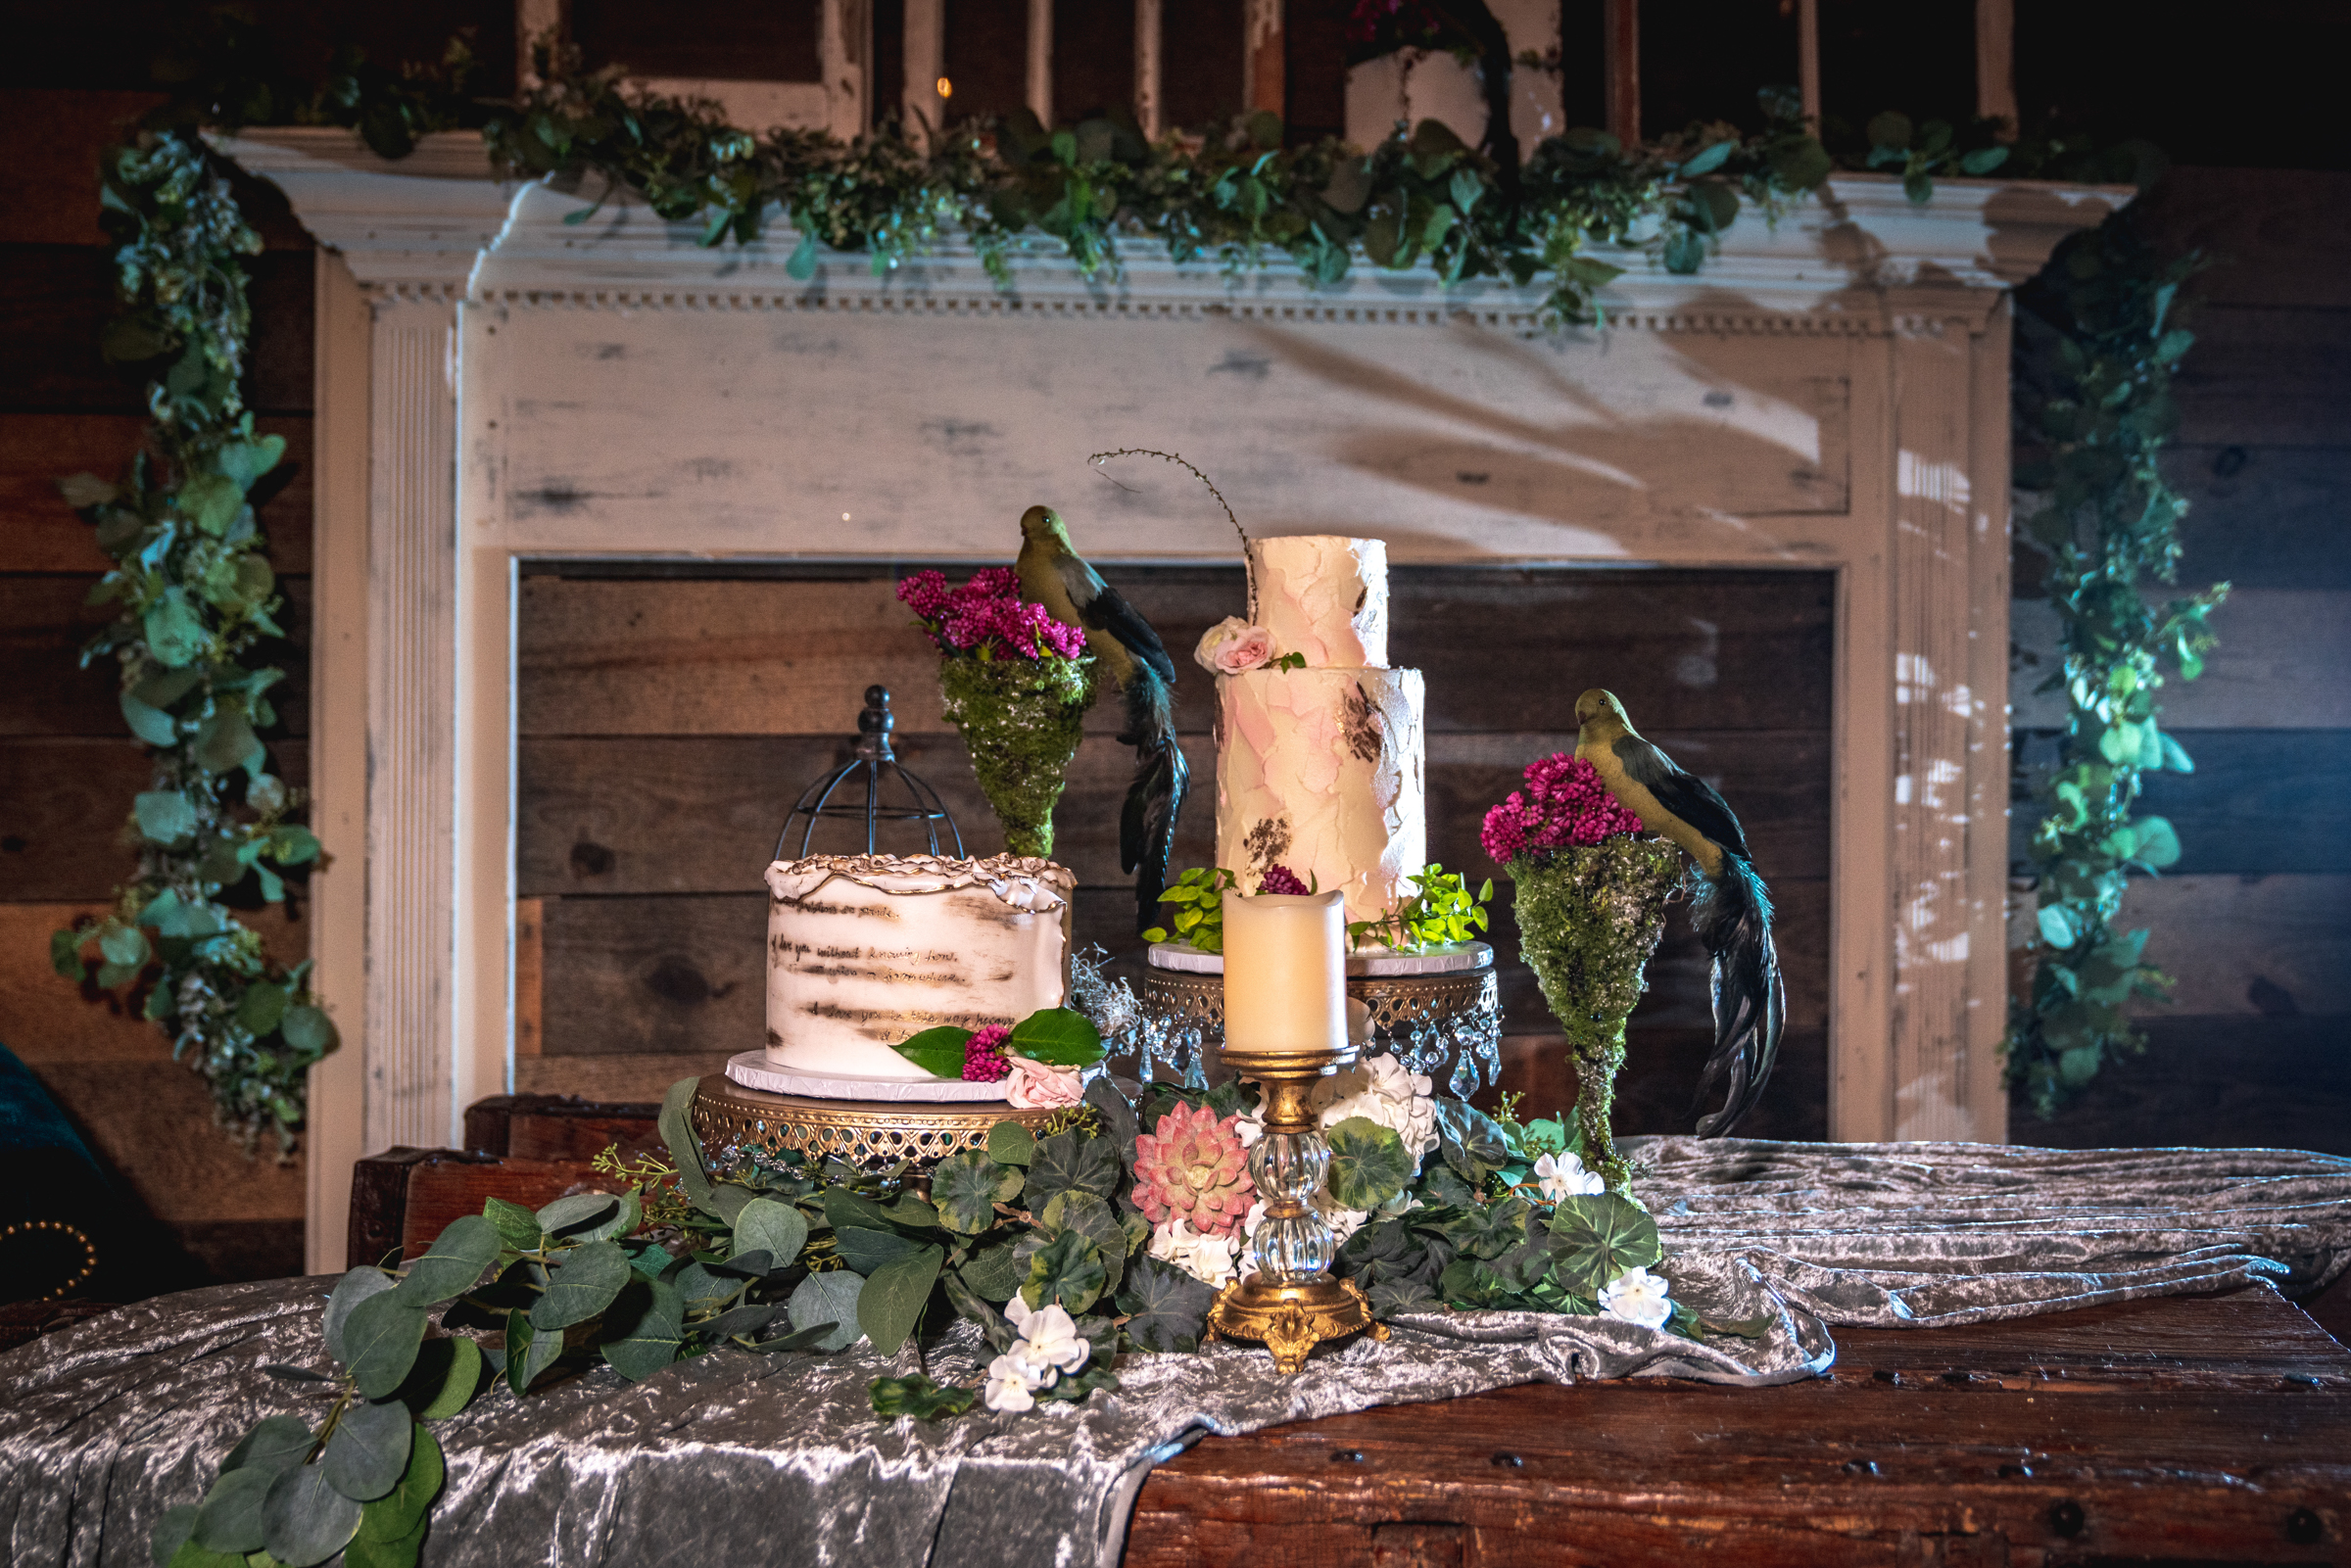 Wedding-cake—pensacola-photography.jpg